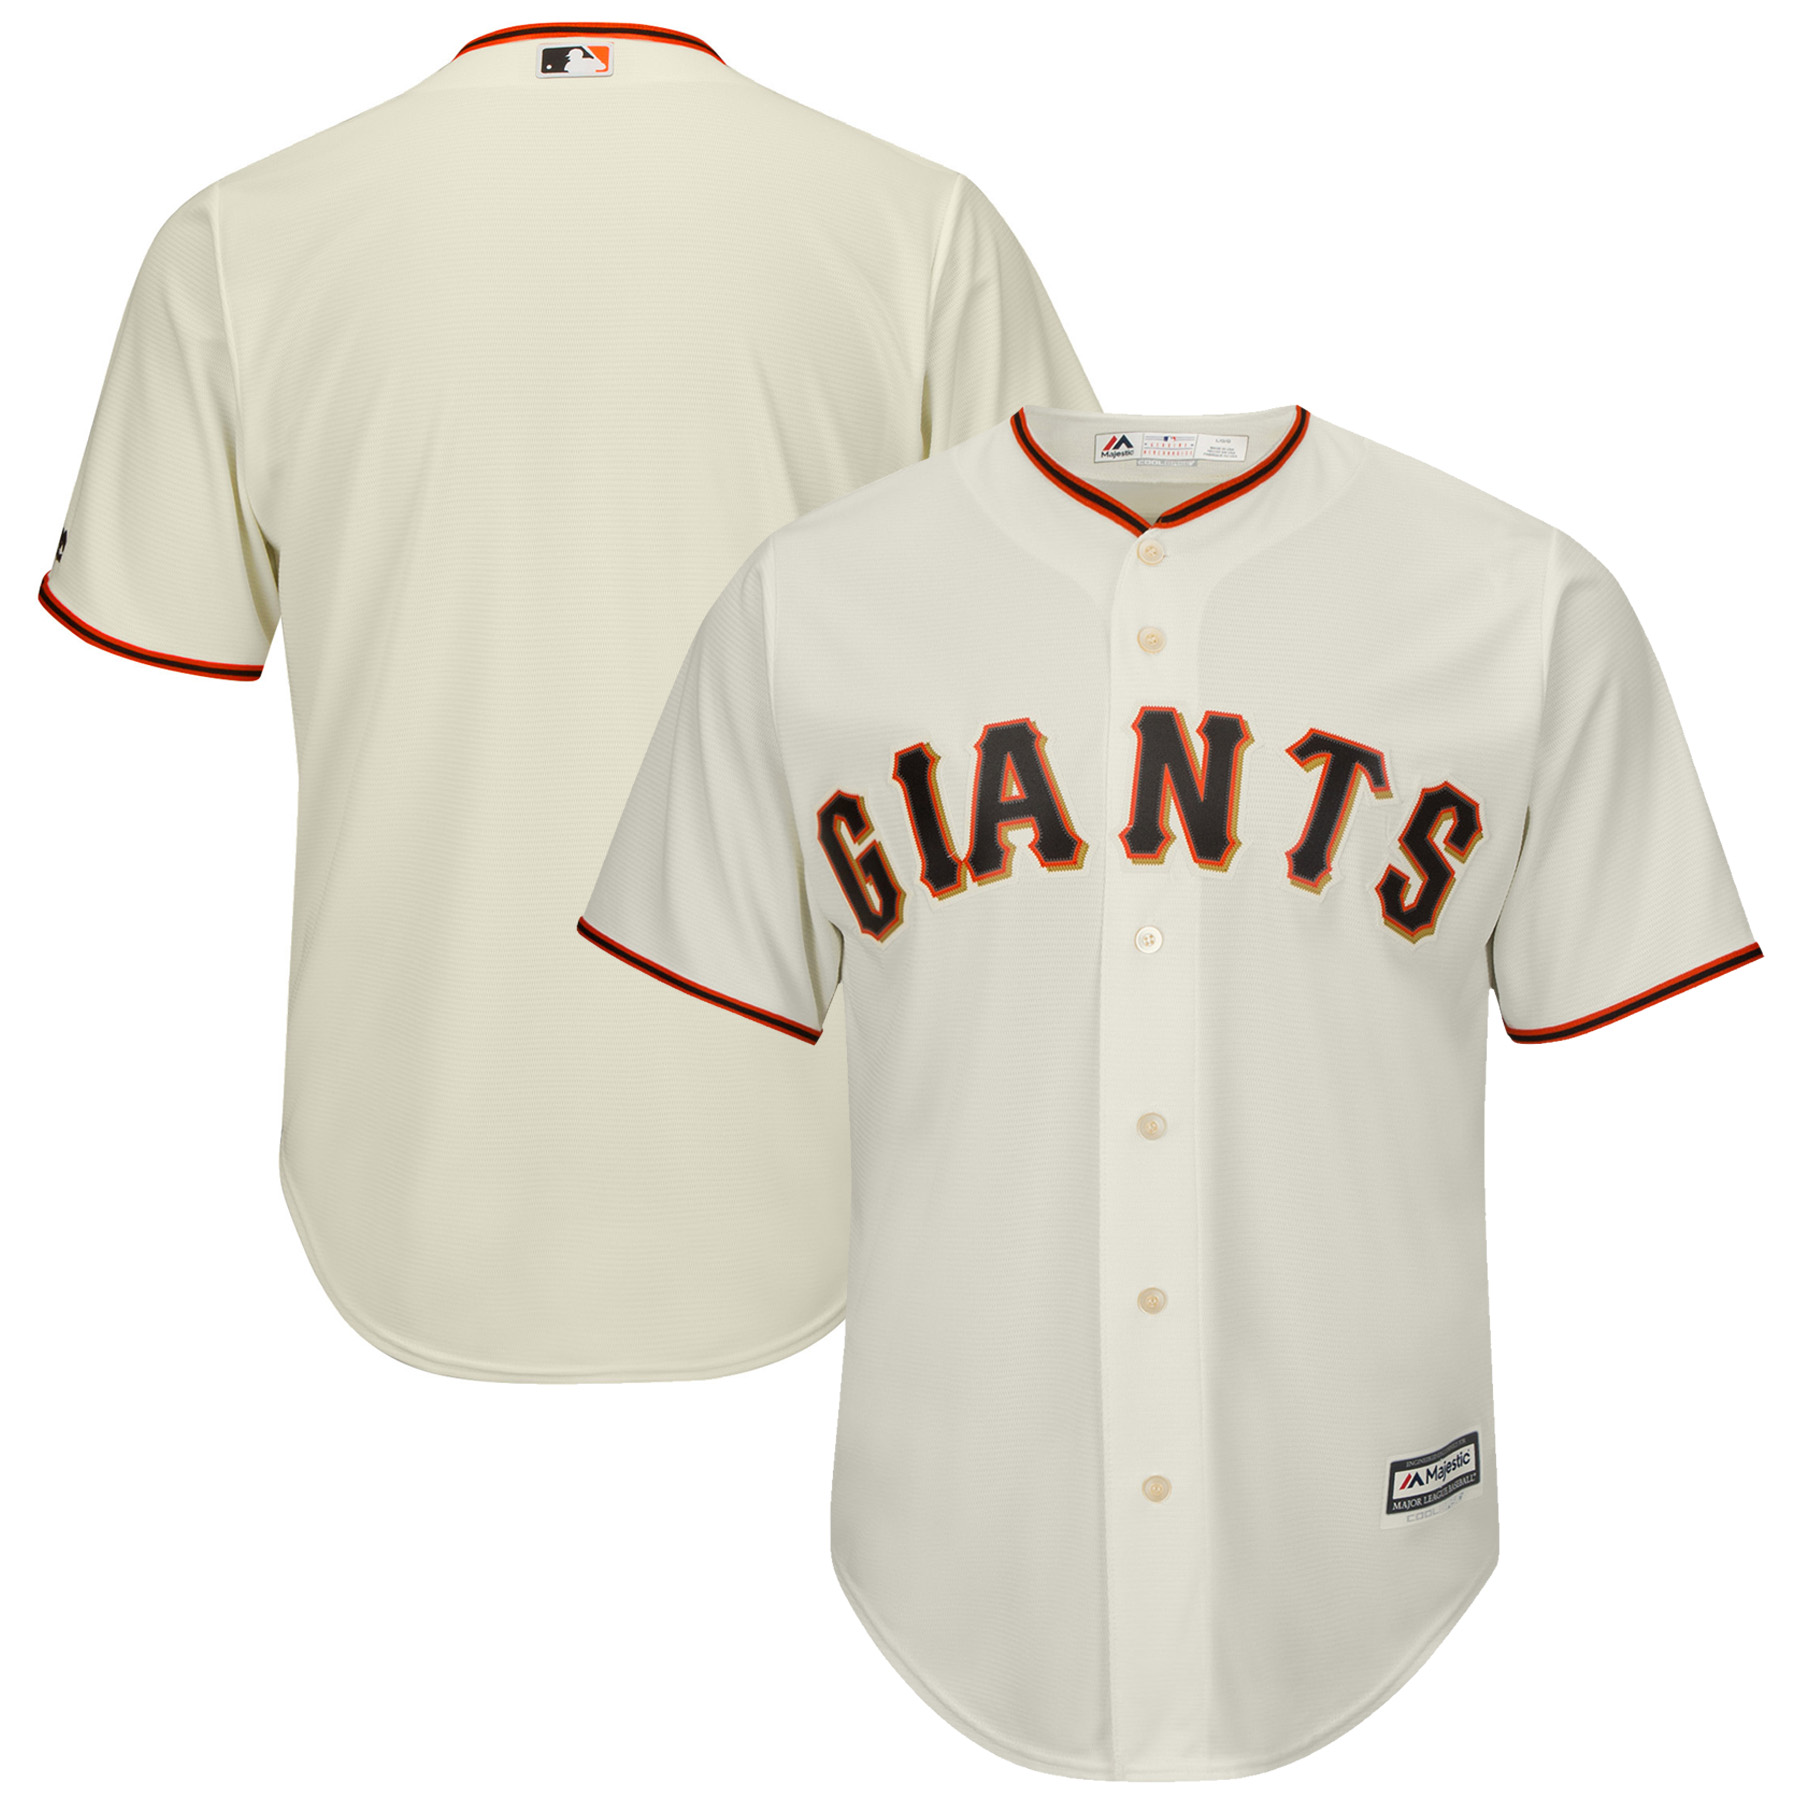 San Francisco Giants Majestic Youth Official Cool Base Jersey - Cream